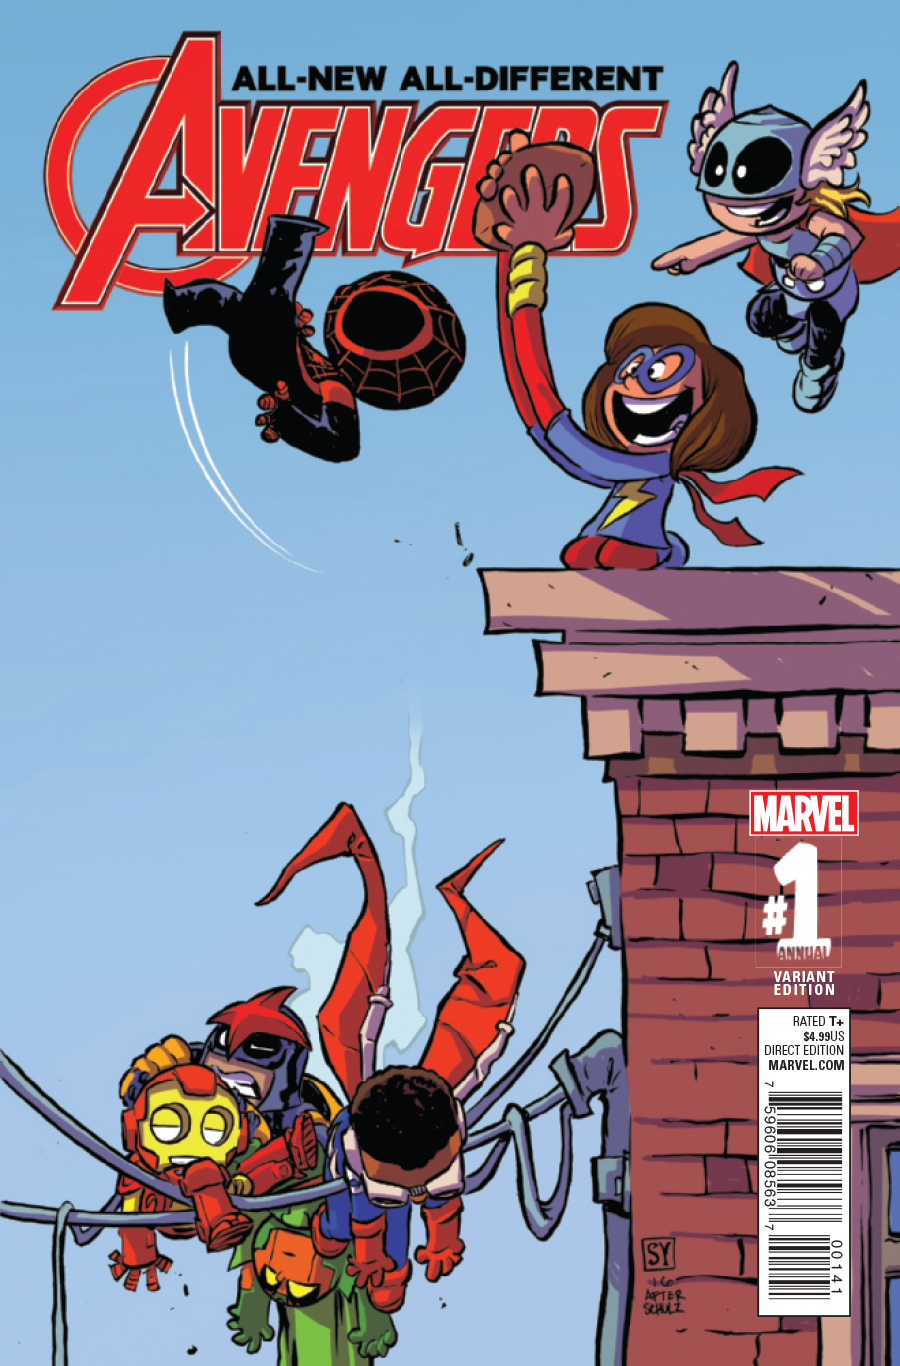 All-New, All-Different Avengers Annual Vol 1 1 Young Variant.jpg